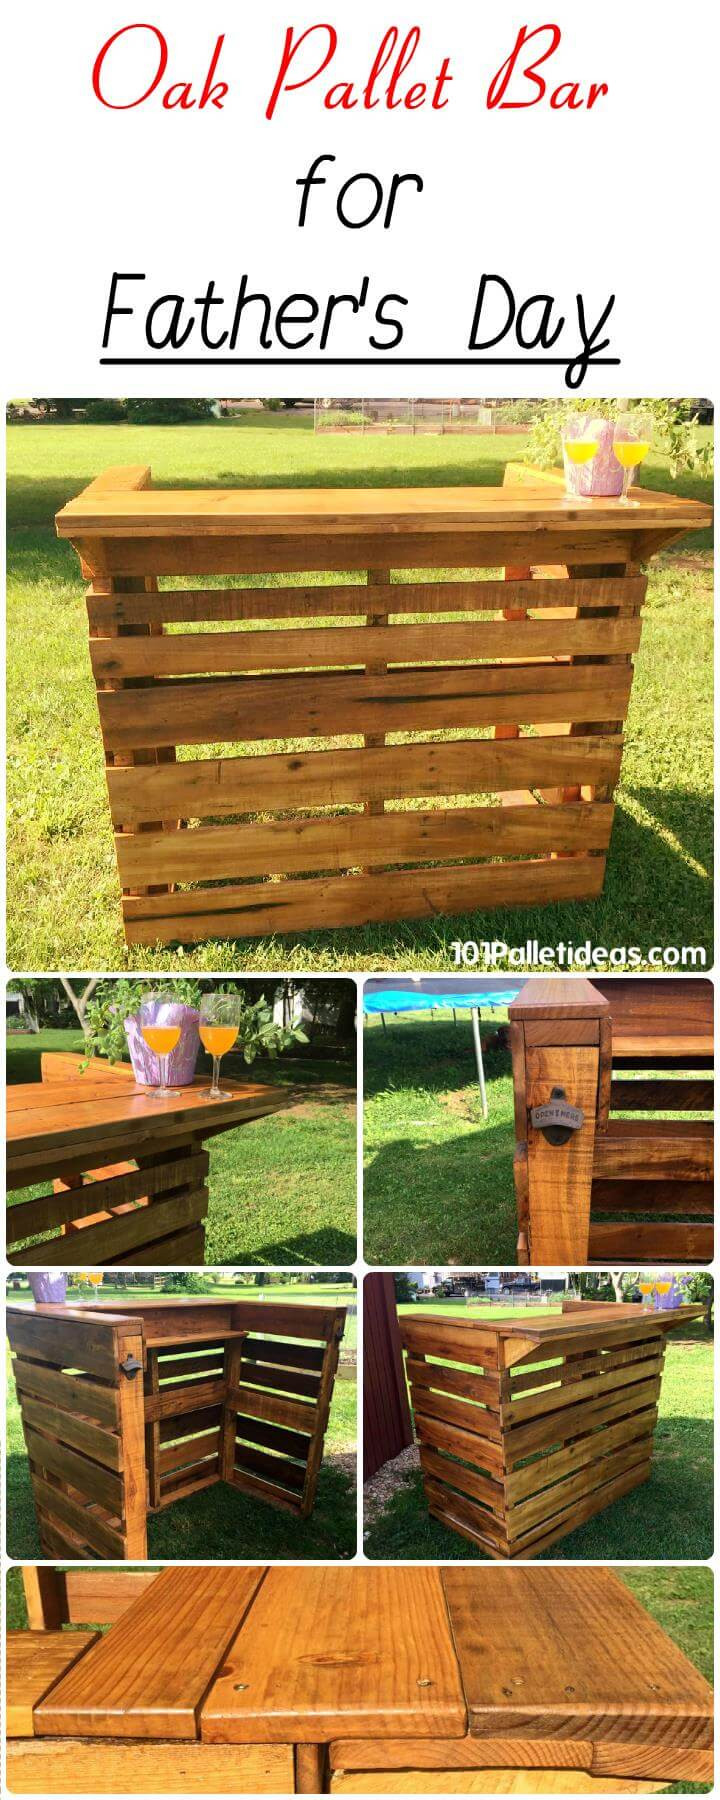 Best ideas about Pallet Gift Ideas . Save or Pin Oak Pallet Bar for Father s Day Now.